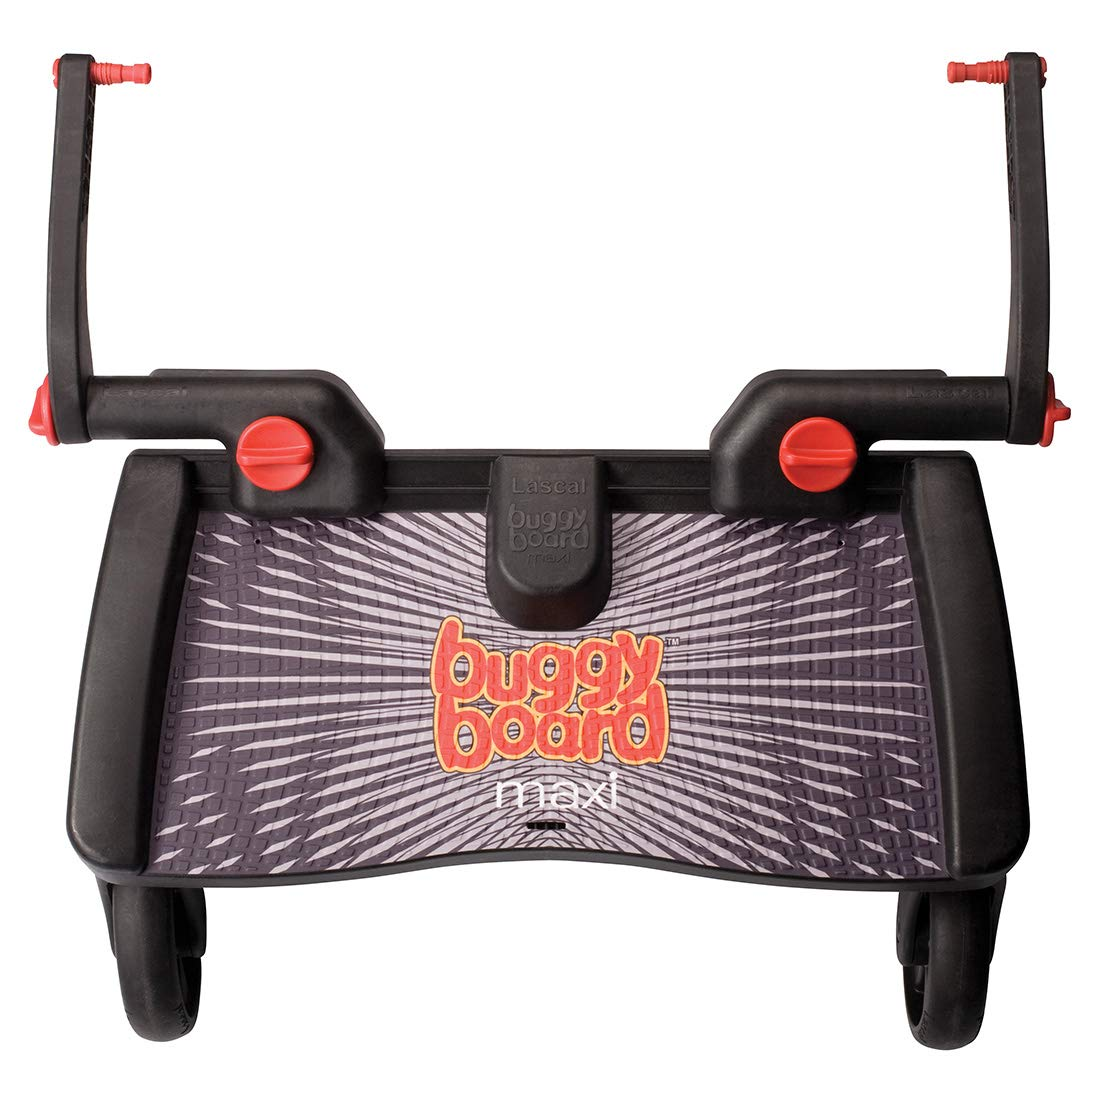 Lascal BuggyBoard Maxi Ride-On Stroller Board 5-26300